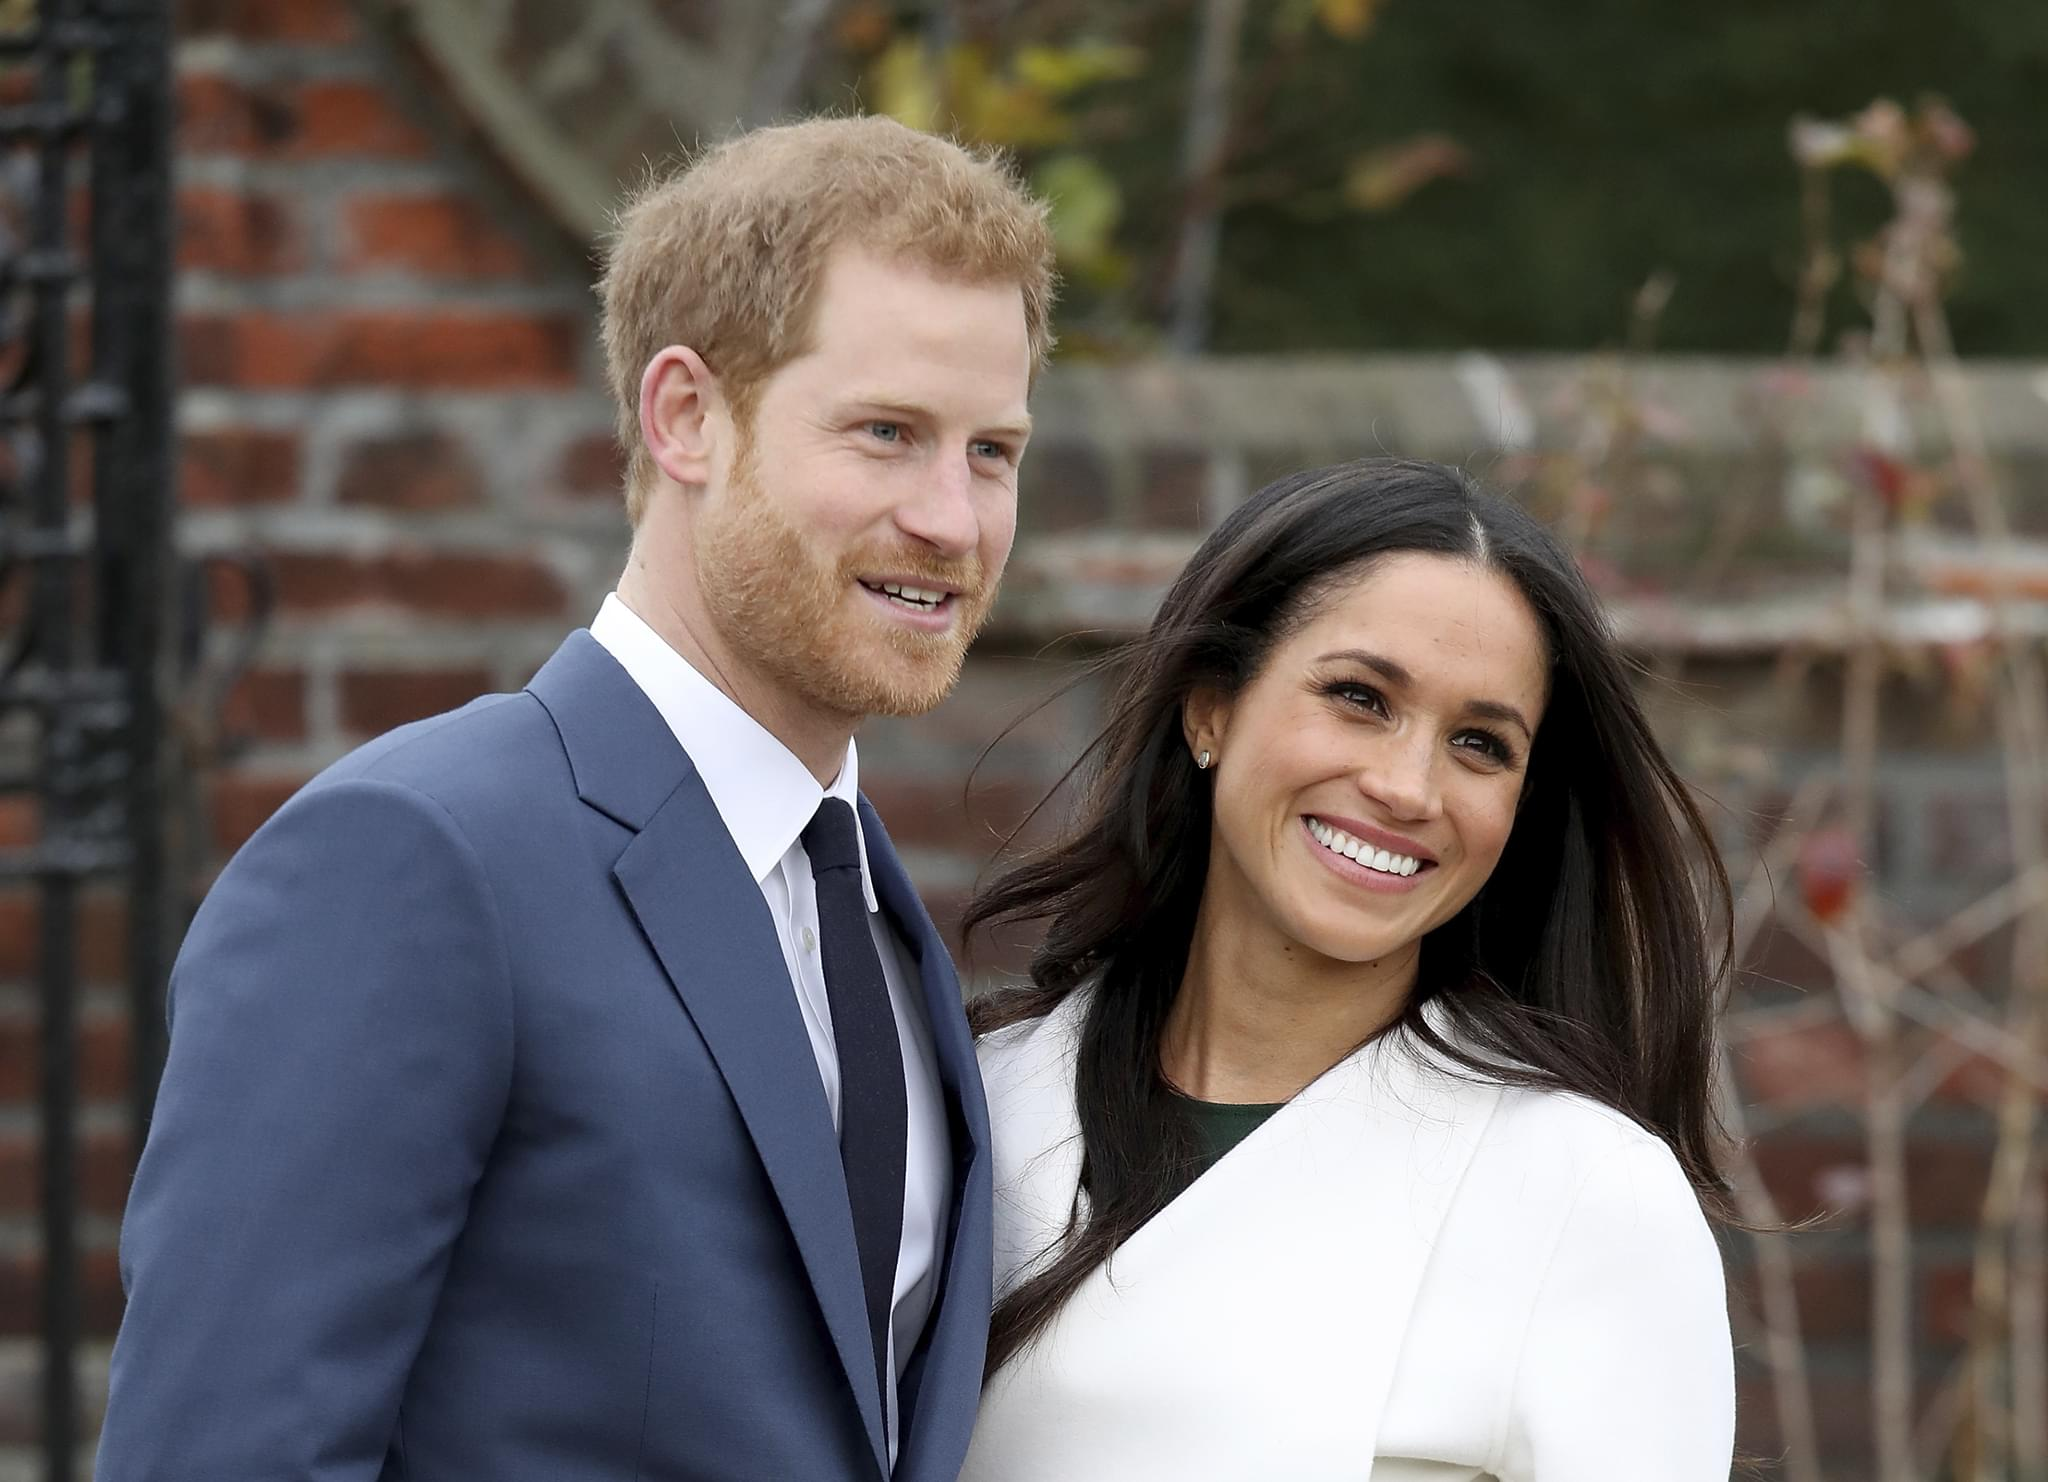 Harry and Meghan Will Officially Step Down on March 31st